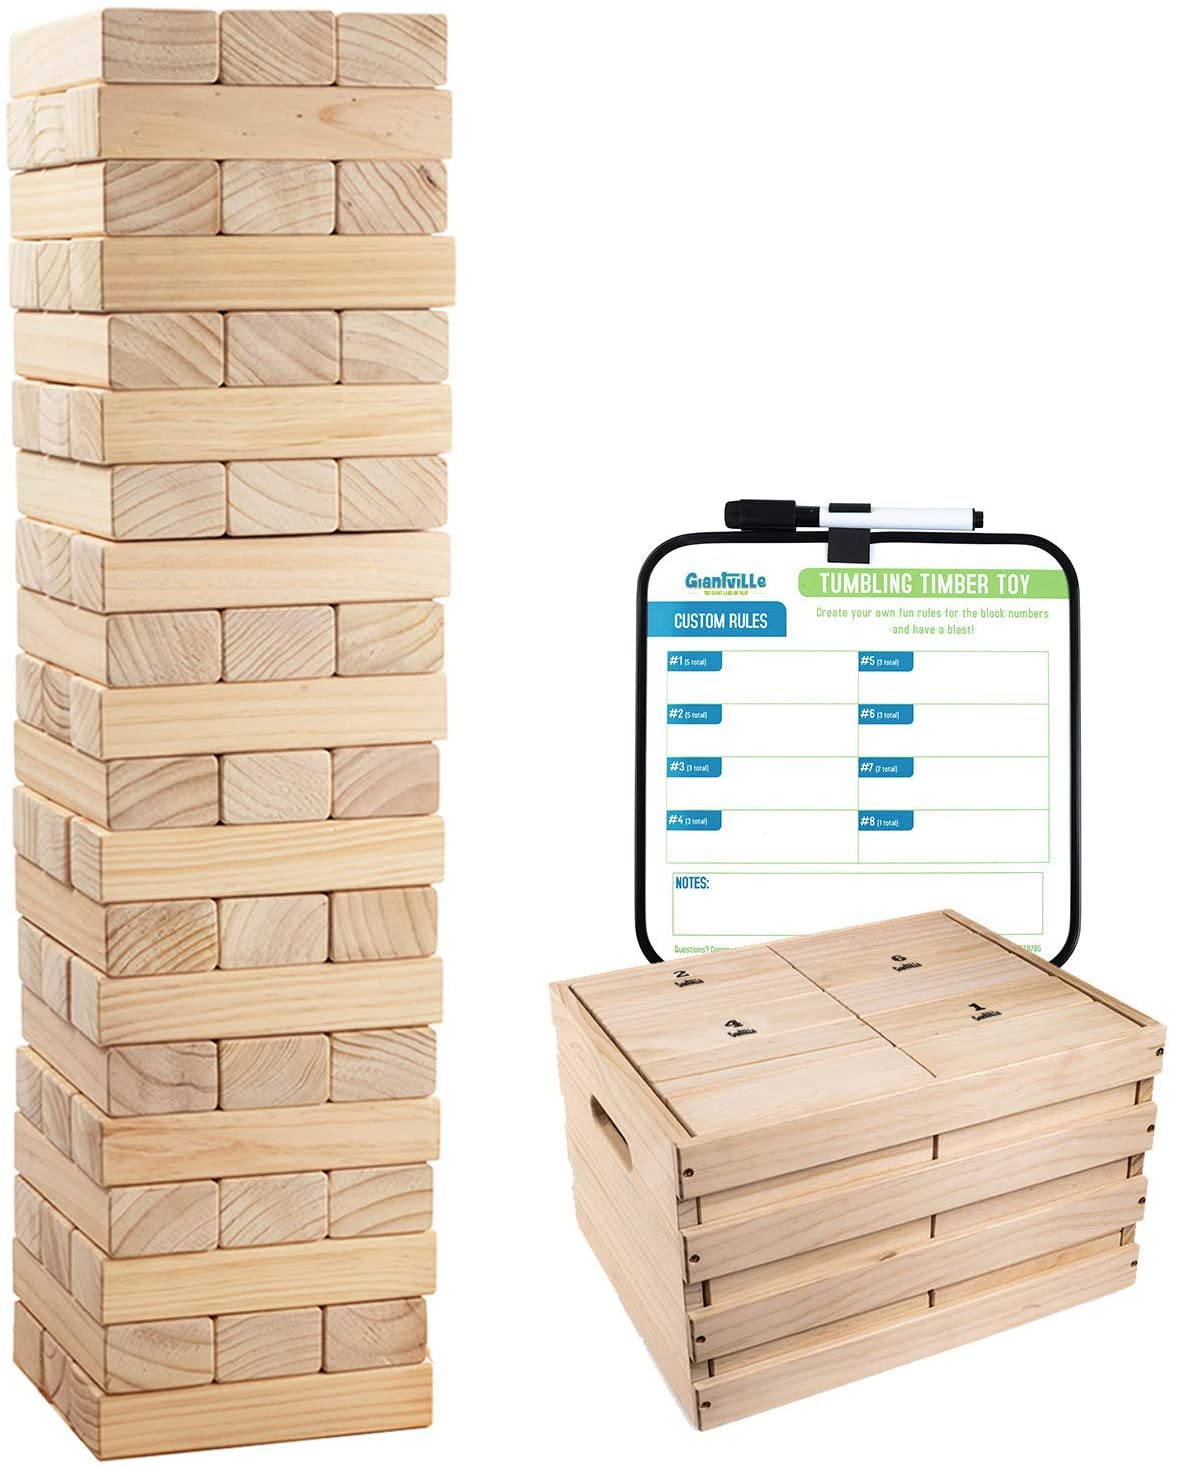 Max 71% OFF Giant Tumbling Timber Toy - 60 Max 53% OFF Game Wooden fo Floor Jumbo Blocks